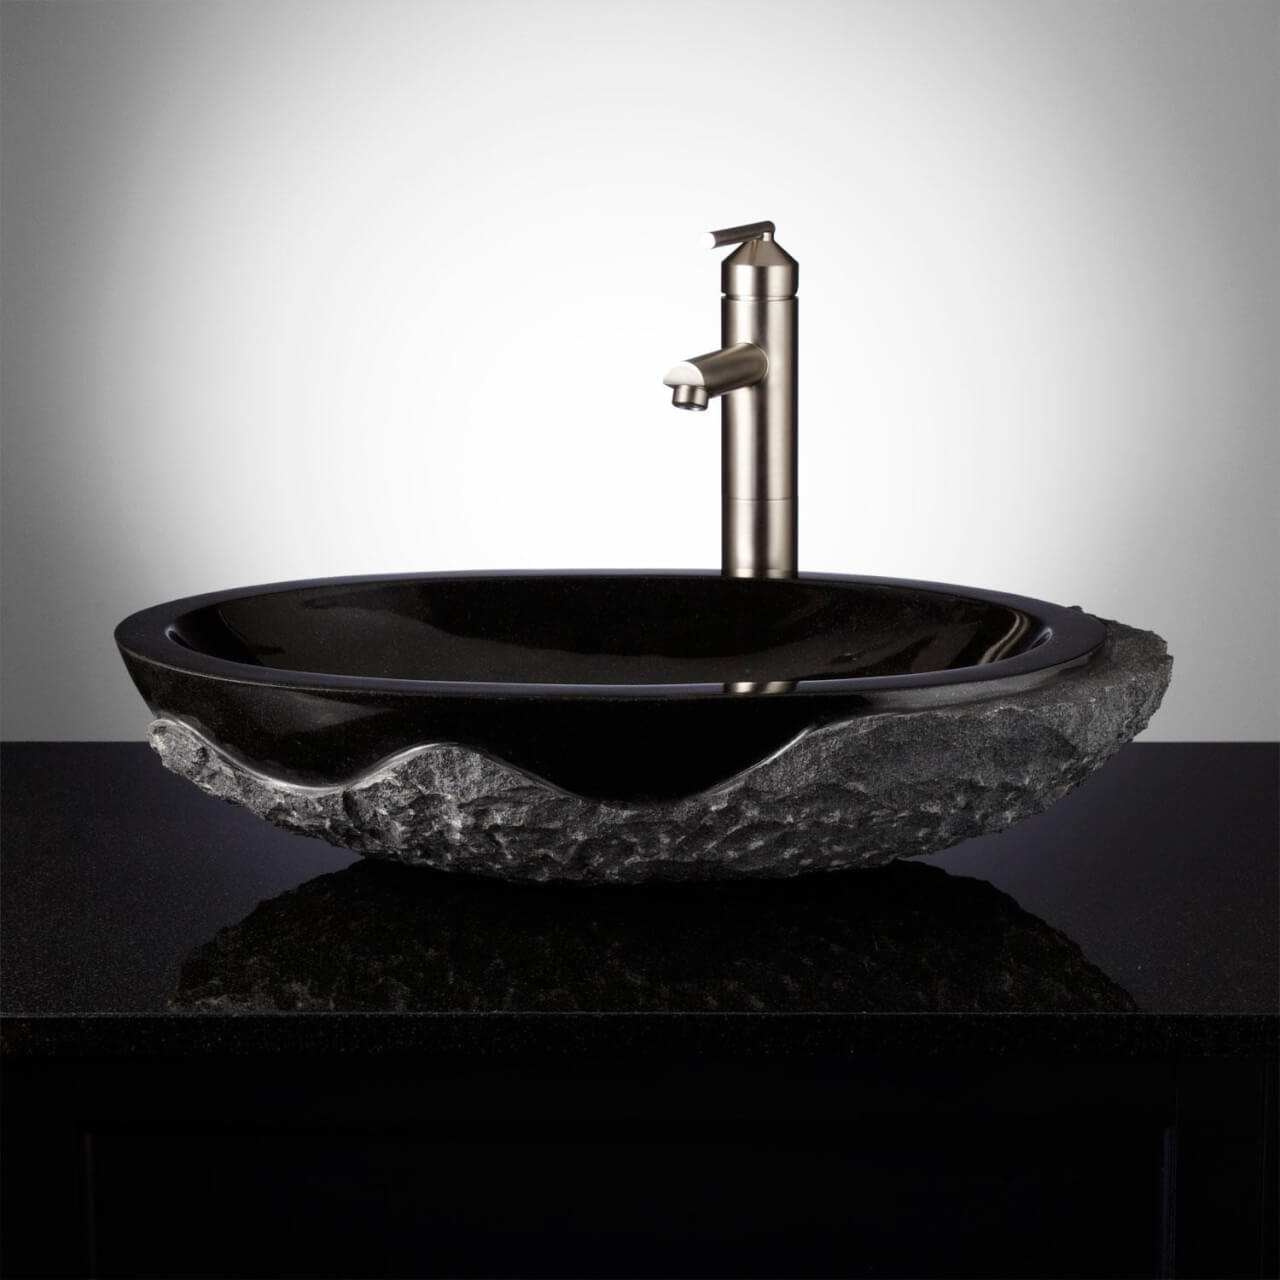 extraordinary bathroom sinks you have never seen before interior design paradise. Black Bedroom Furniture Sets. Home Design Ideas